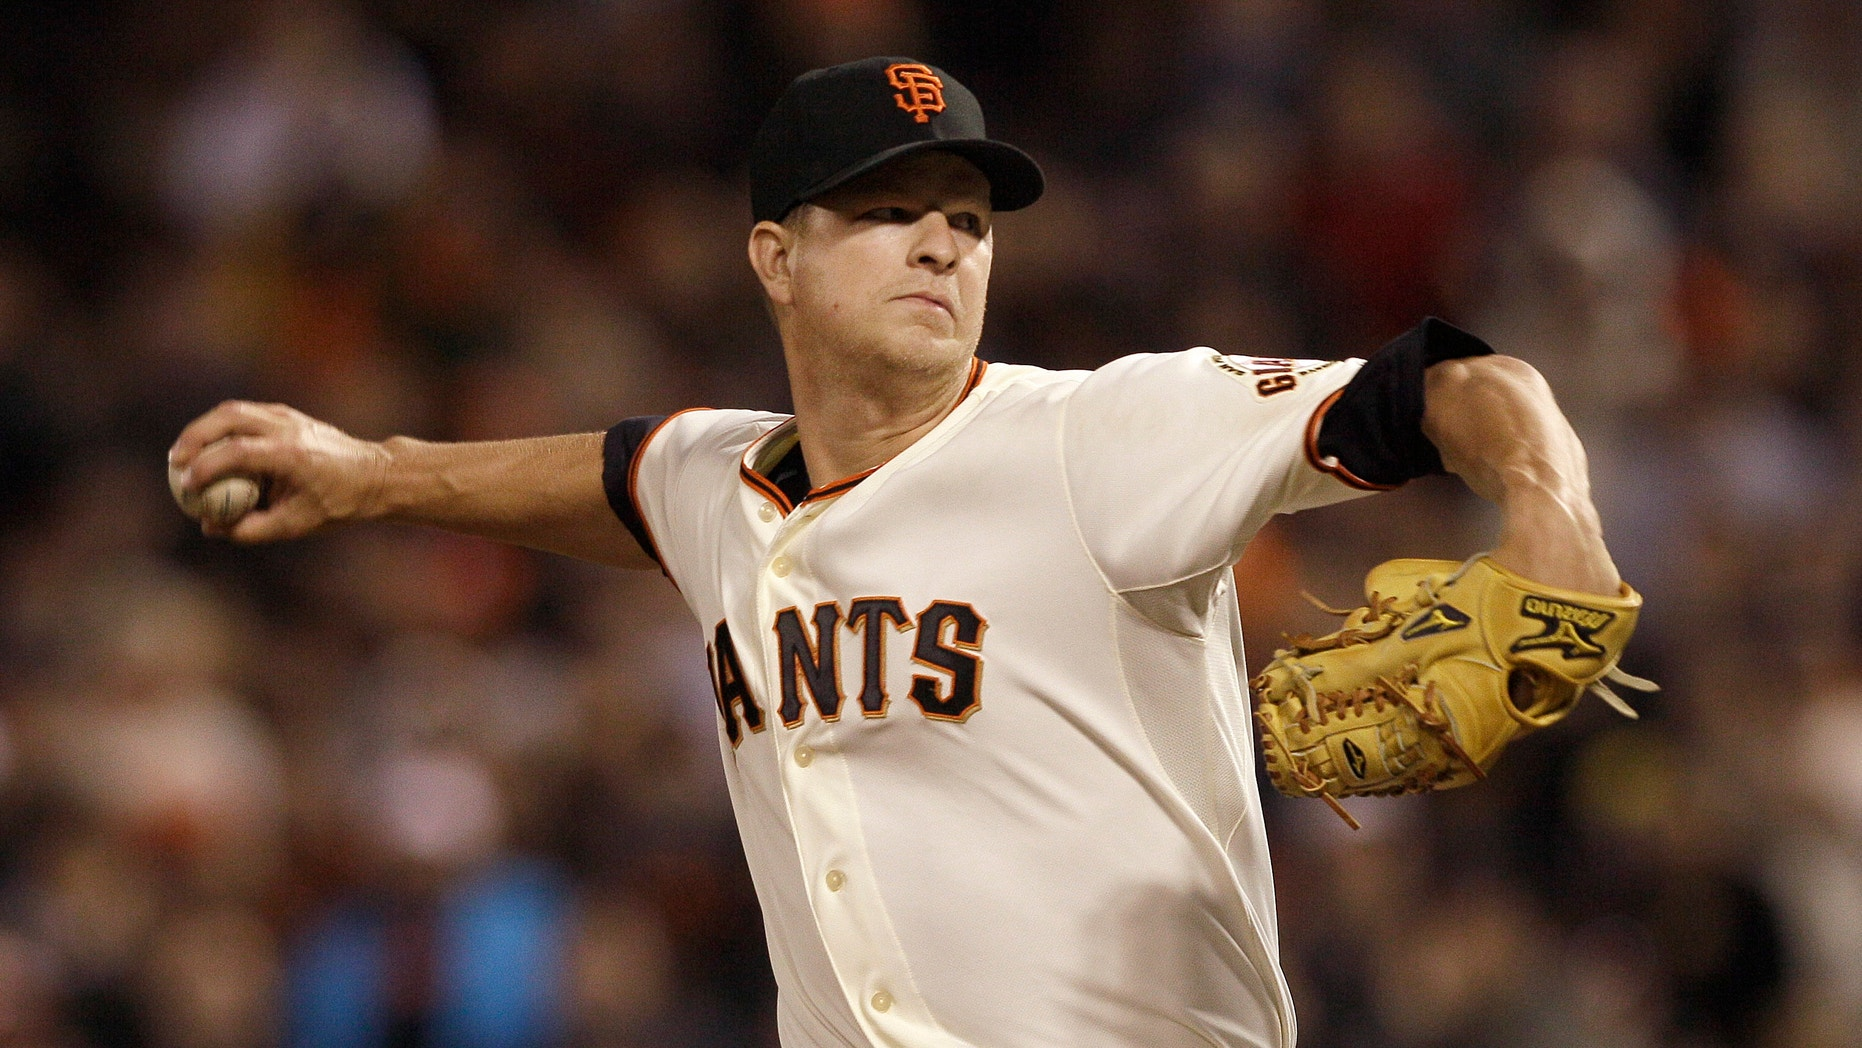 June 13, 2012: Matt Cain threw a perfect game, striking out 14 in San Francisco's 10-0 victory over Houston.